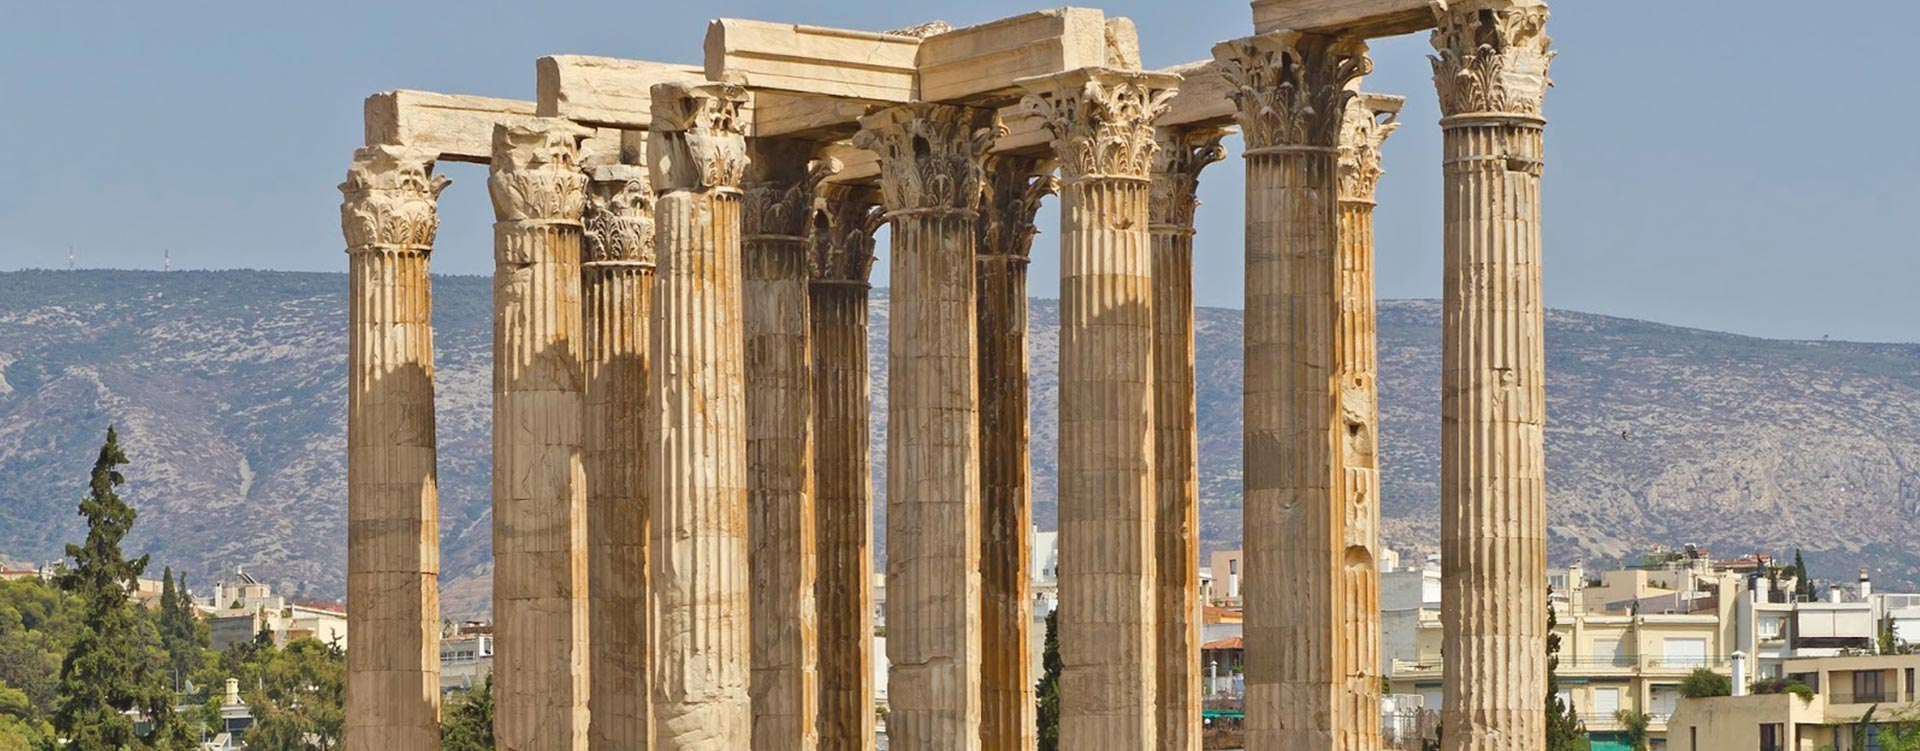 Enjoy first class deals to Athens and tours of Delphi for divine inspiration. - IFlyFirstClass